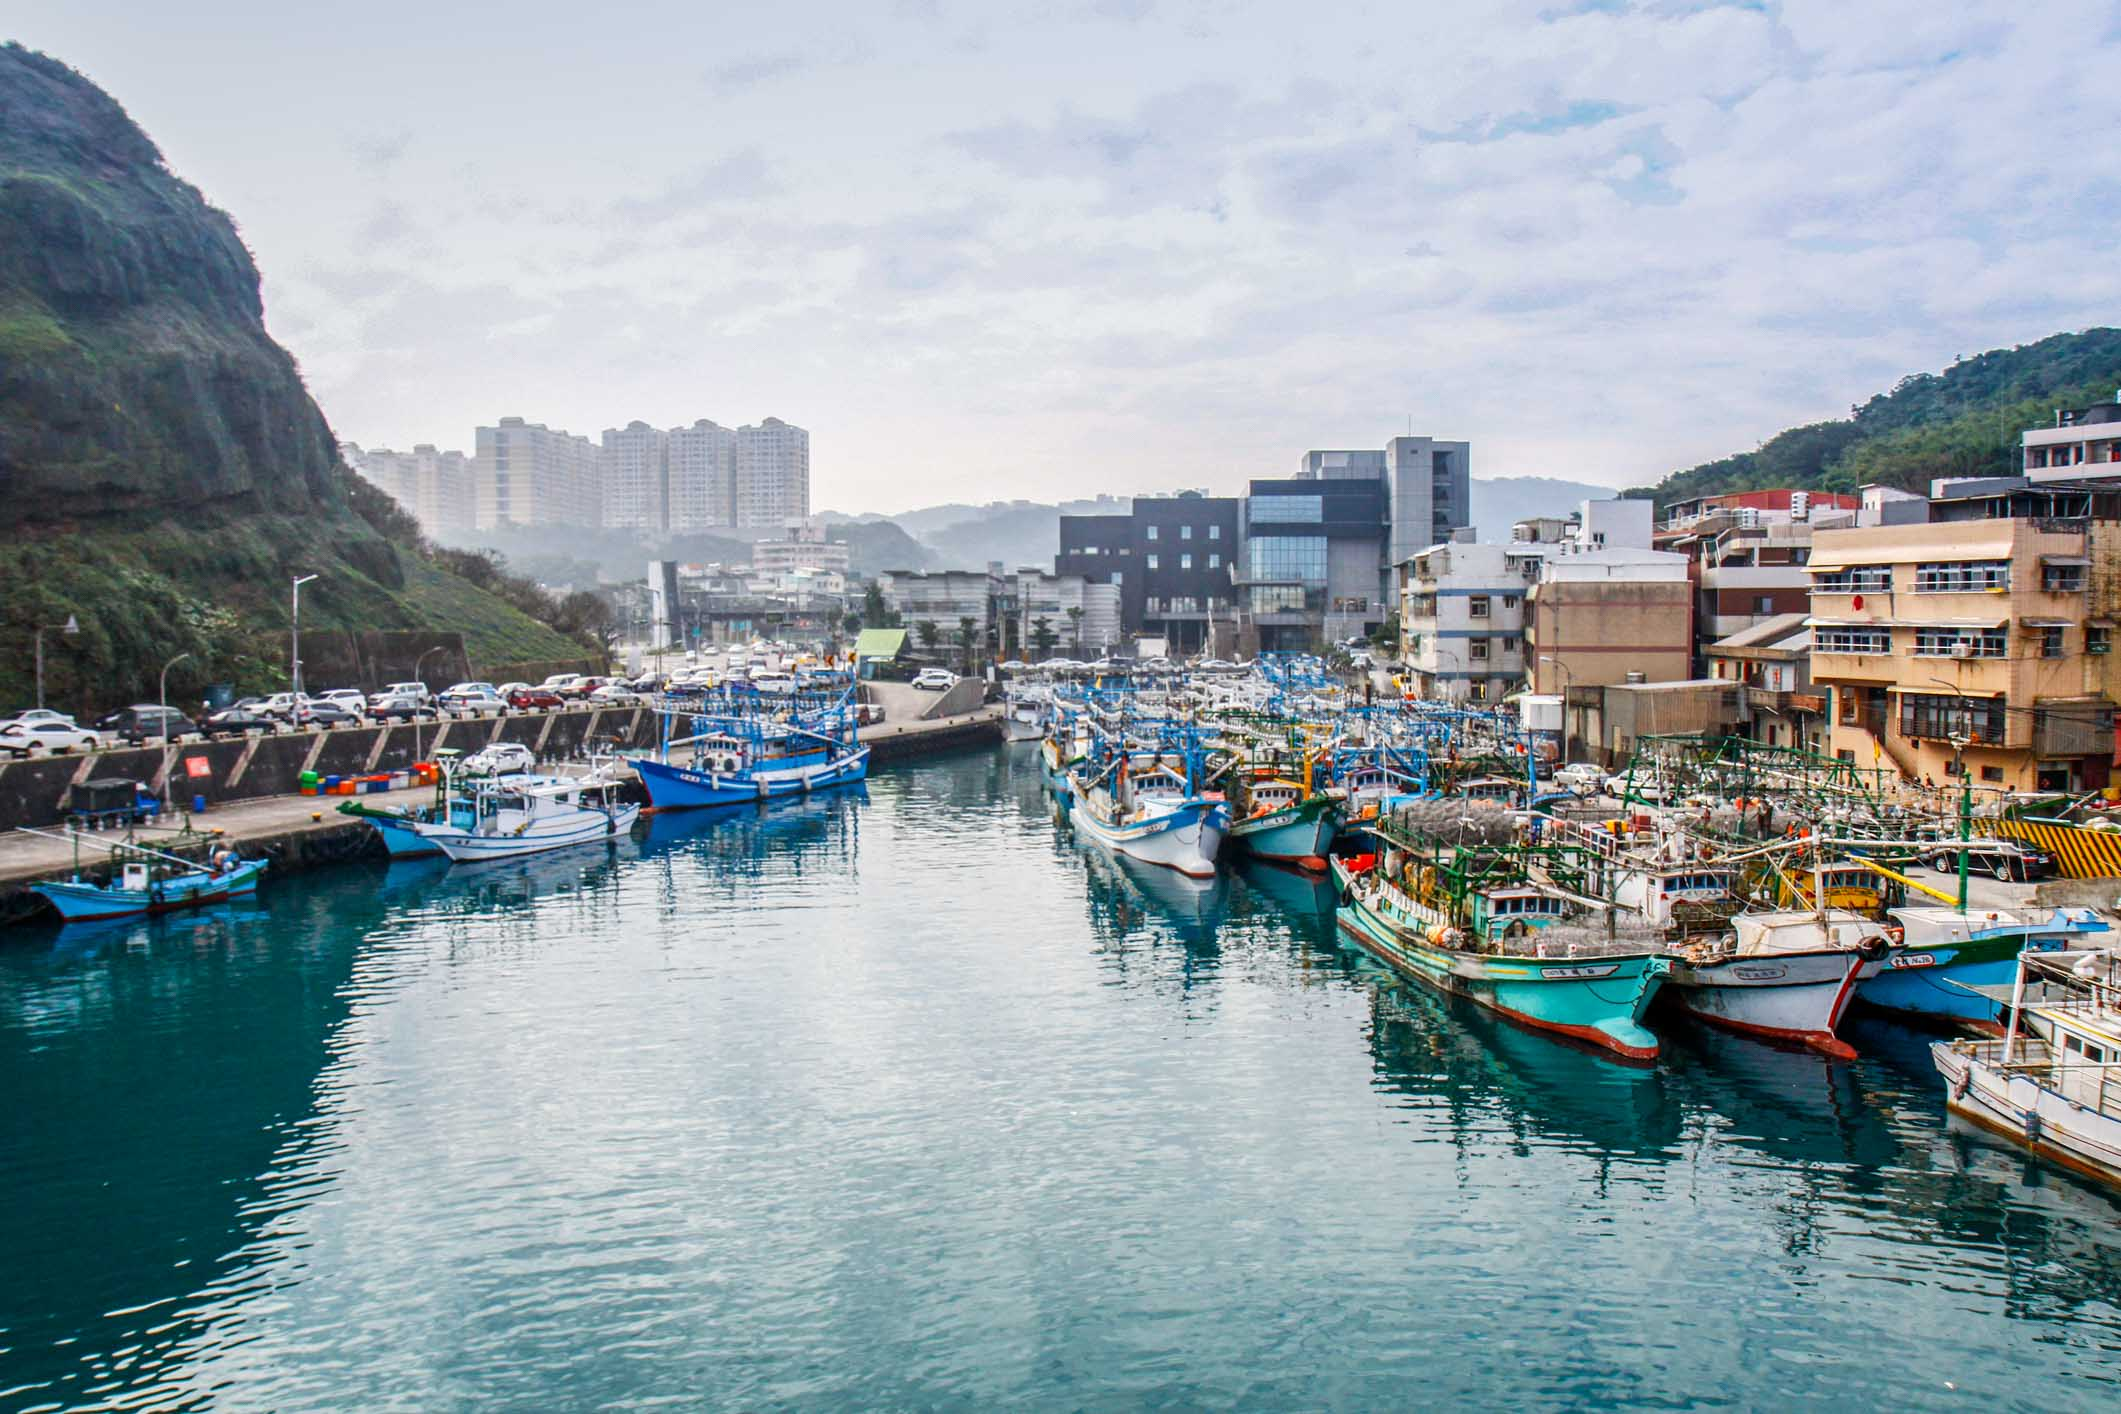 Keelung Taiwan – A Seafood Paradise Just North of Taipei